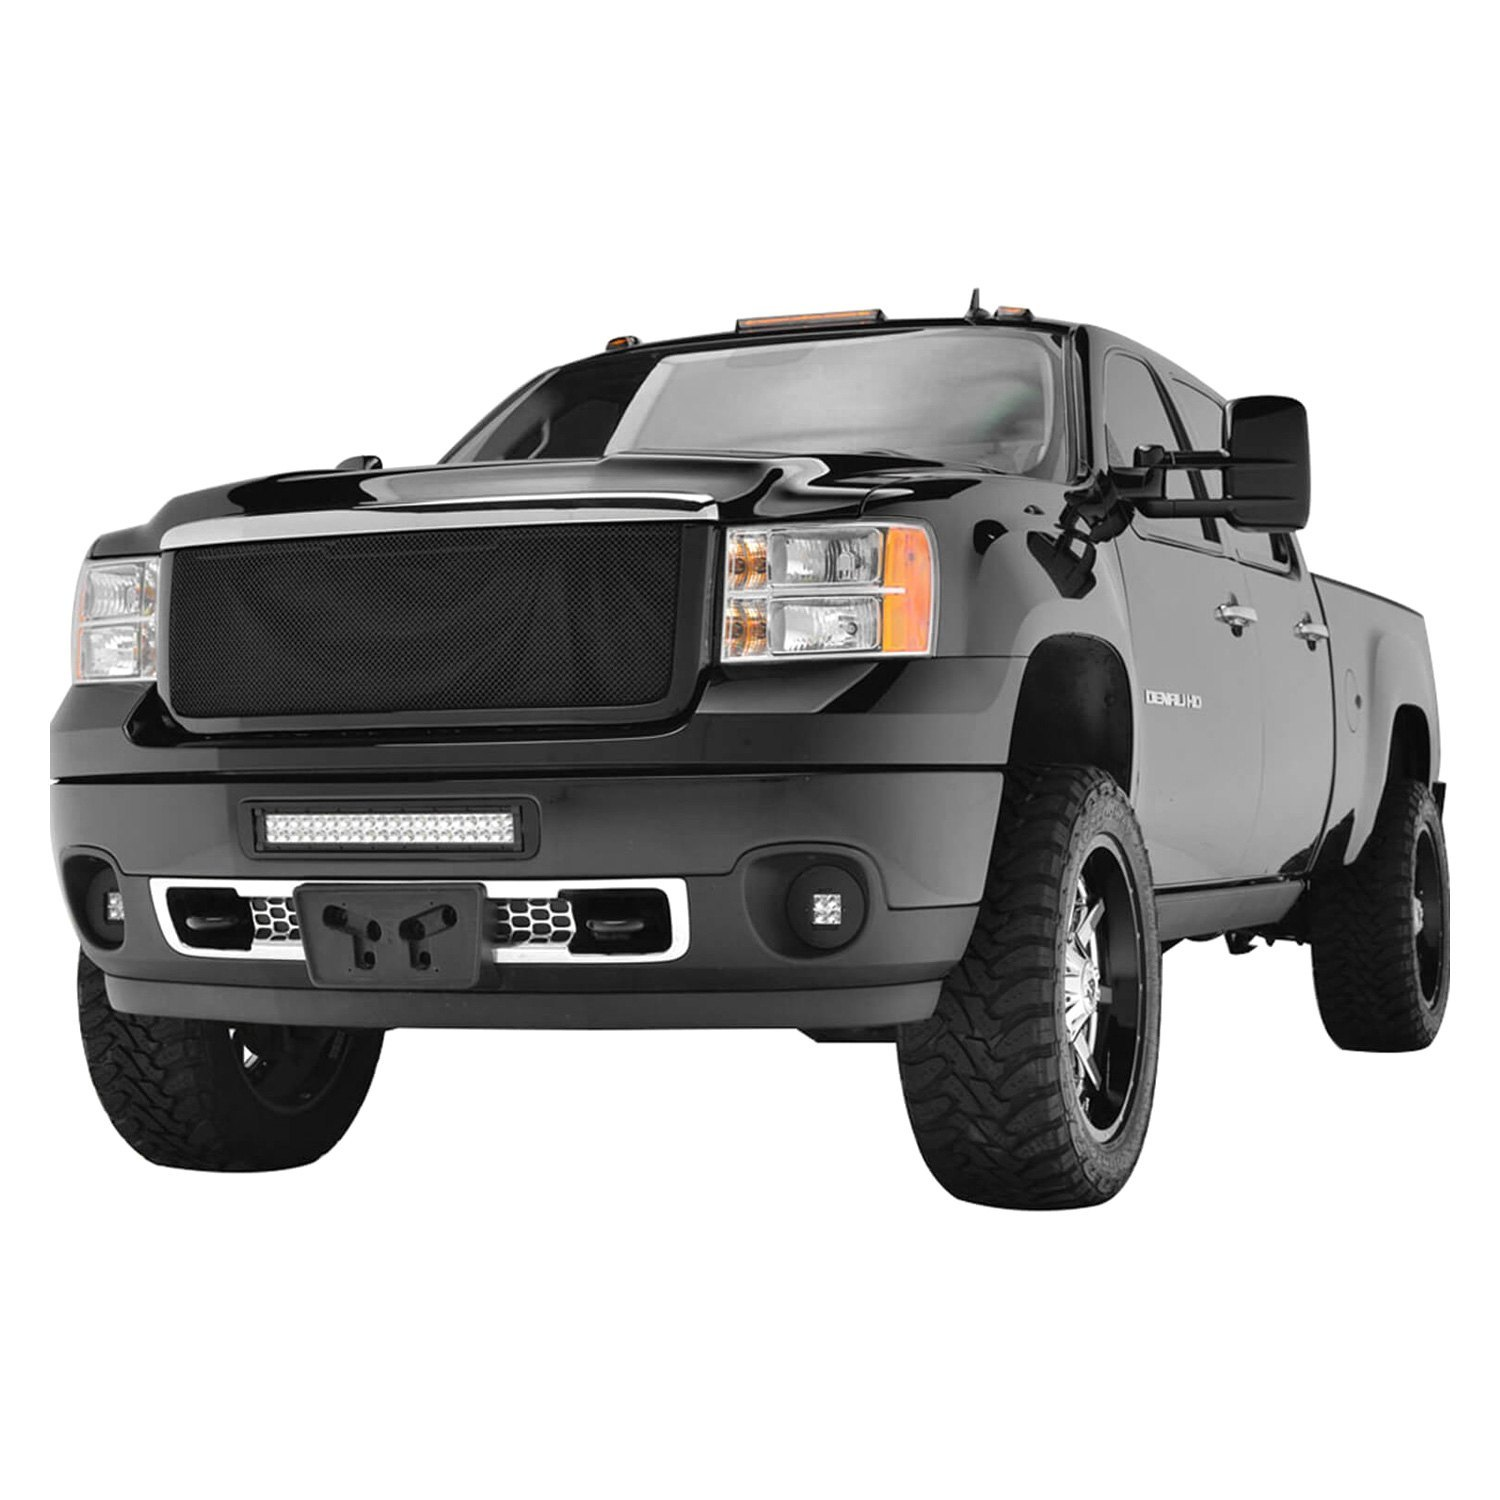 new gmc sierra accessories automotive parts and more. Black Bedroom Furniture Sets. Home Design Ideas